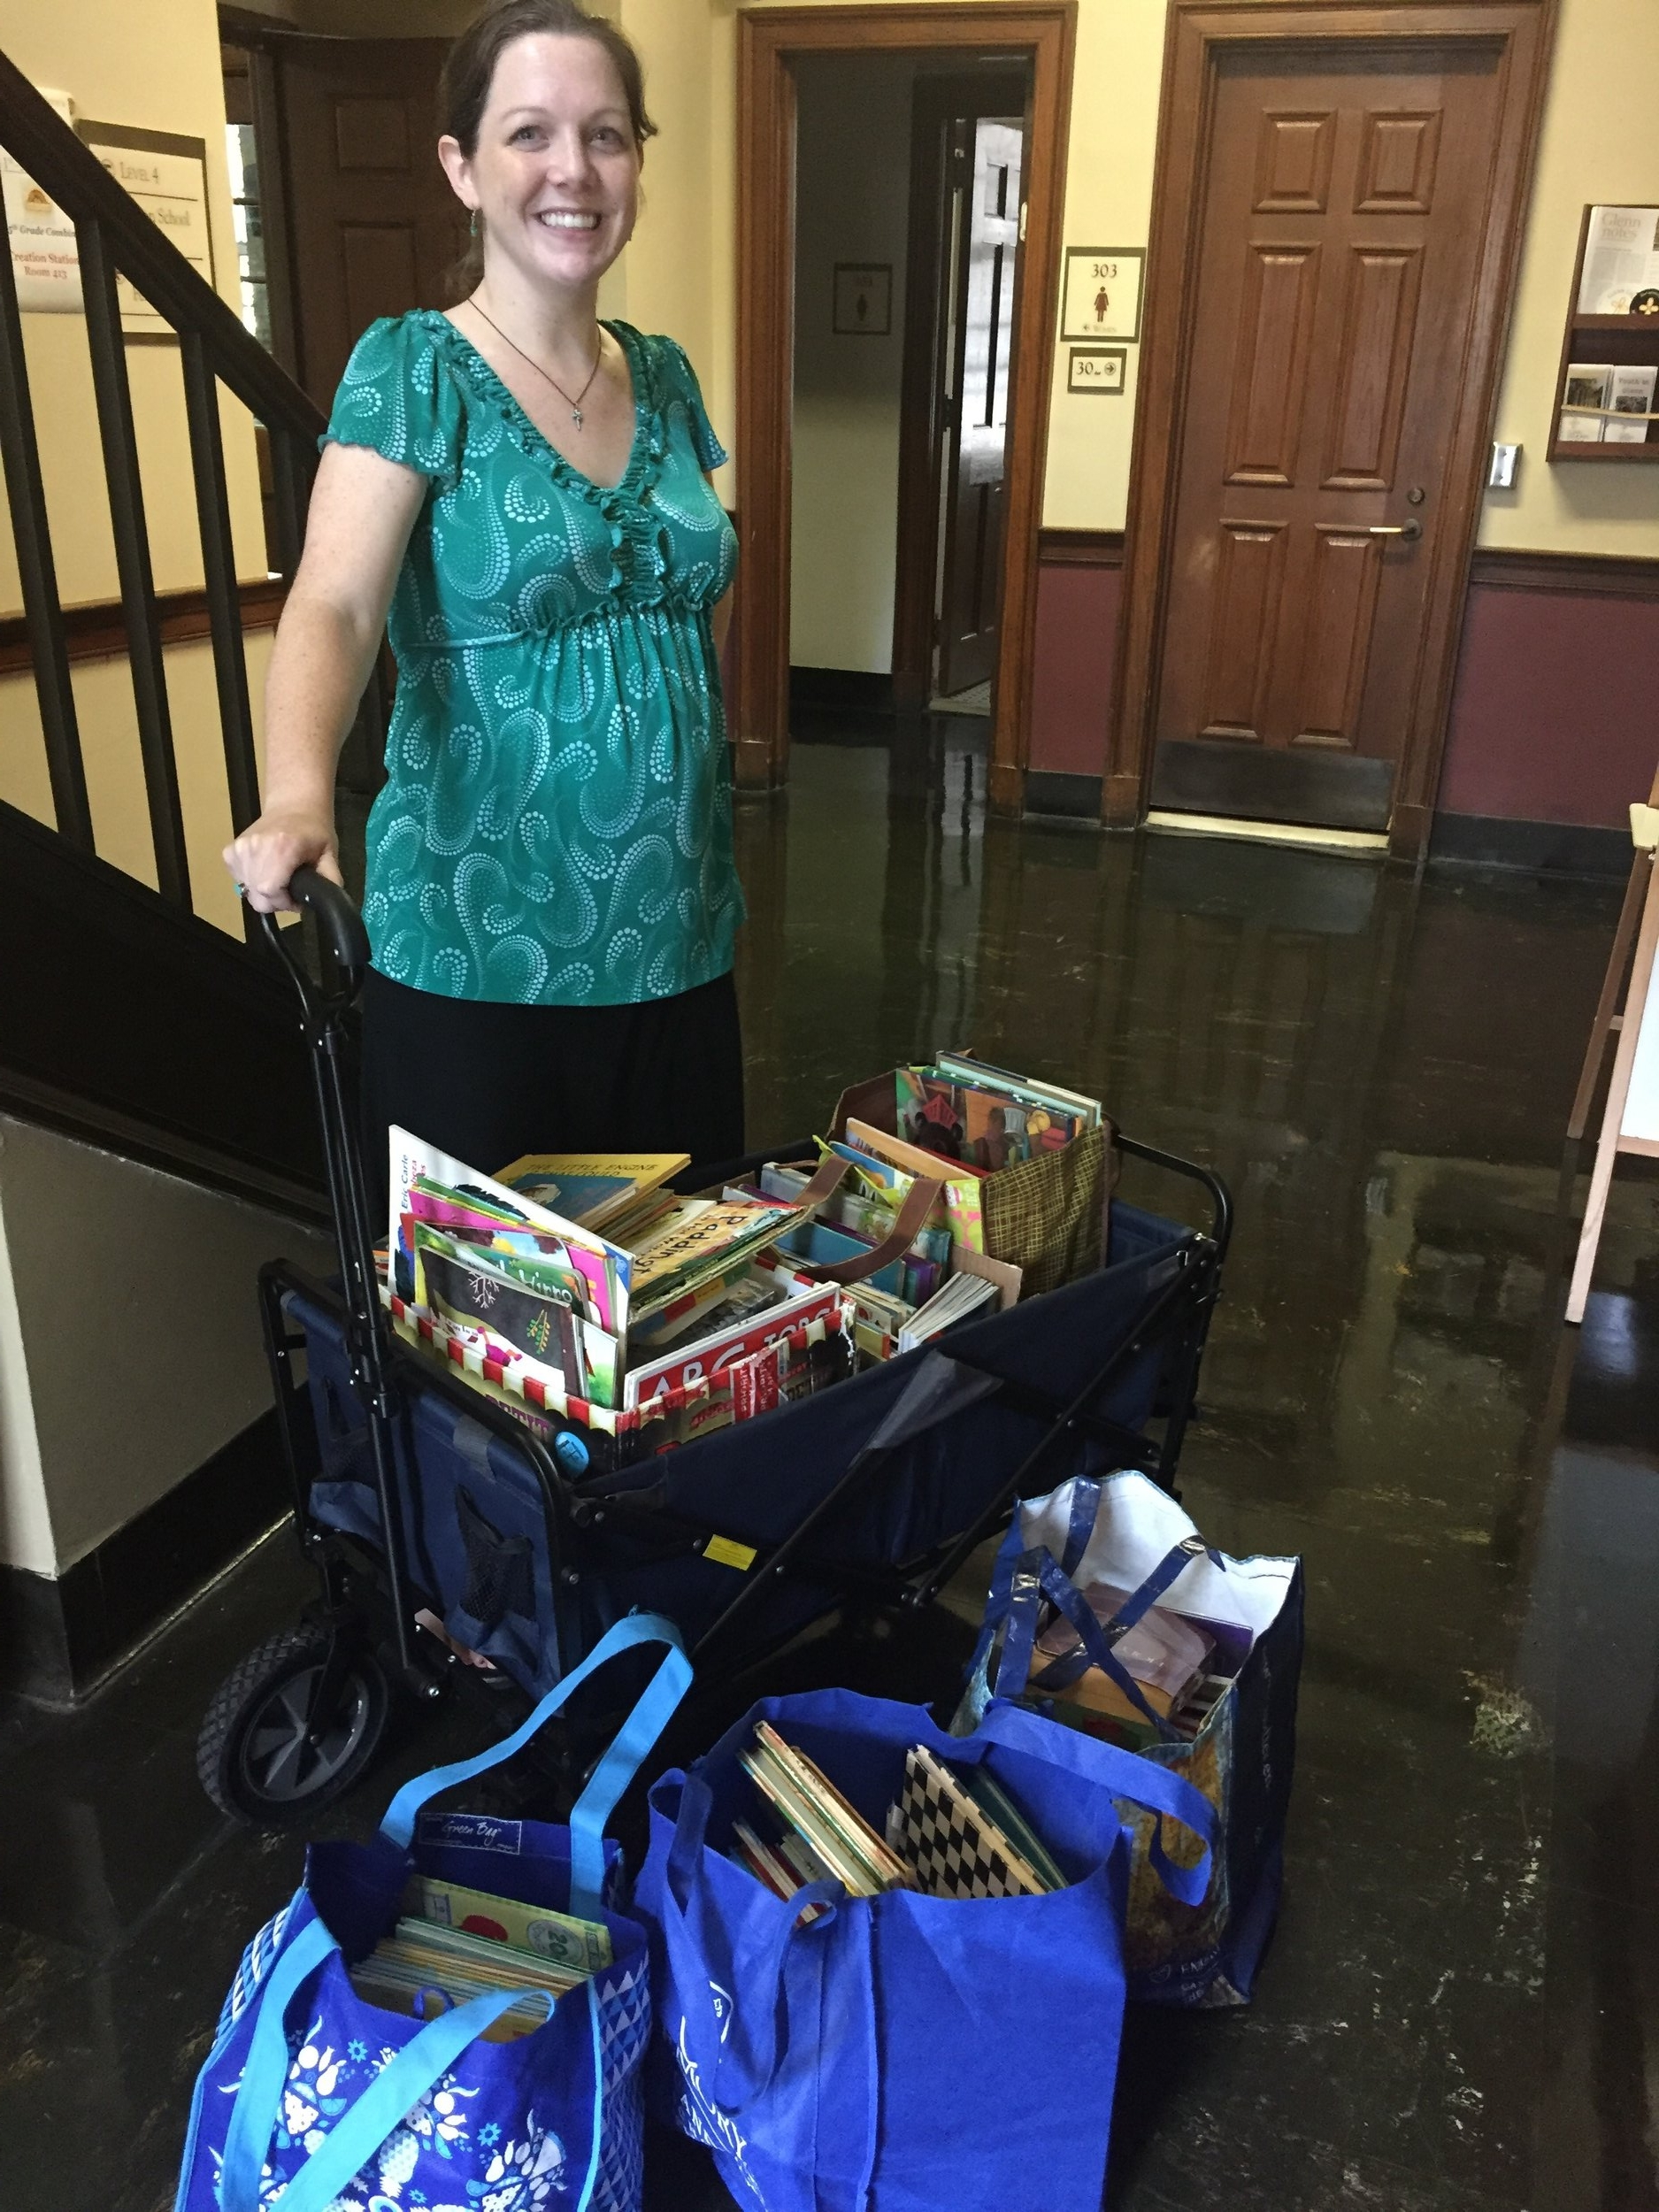 Once per month, volunteers from Glenn serve lunch for 85 women and children who visit the Women's Community Kitchen. You all took our plea to clean out your attics and playrooms to heart! We restocked their book shelves with new and gently used children's books of all reading levels.